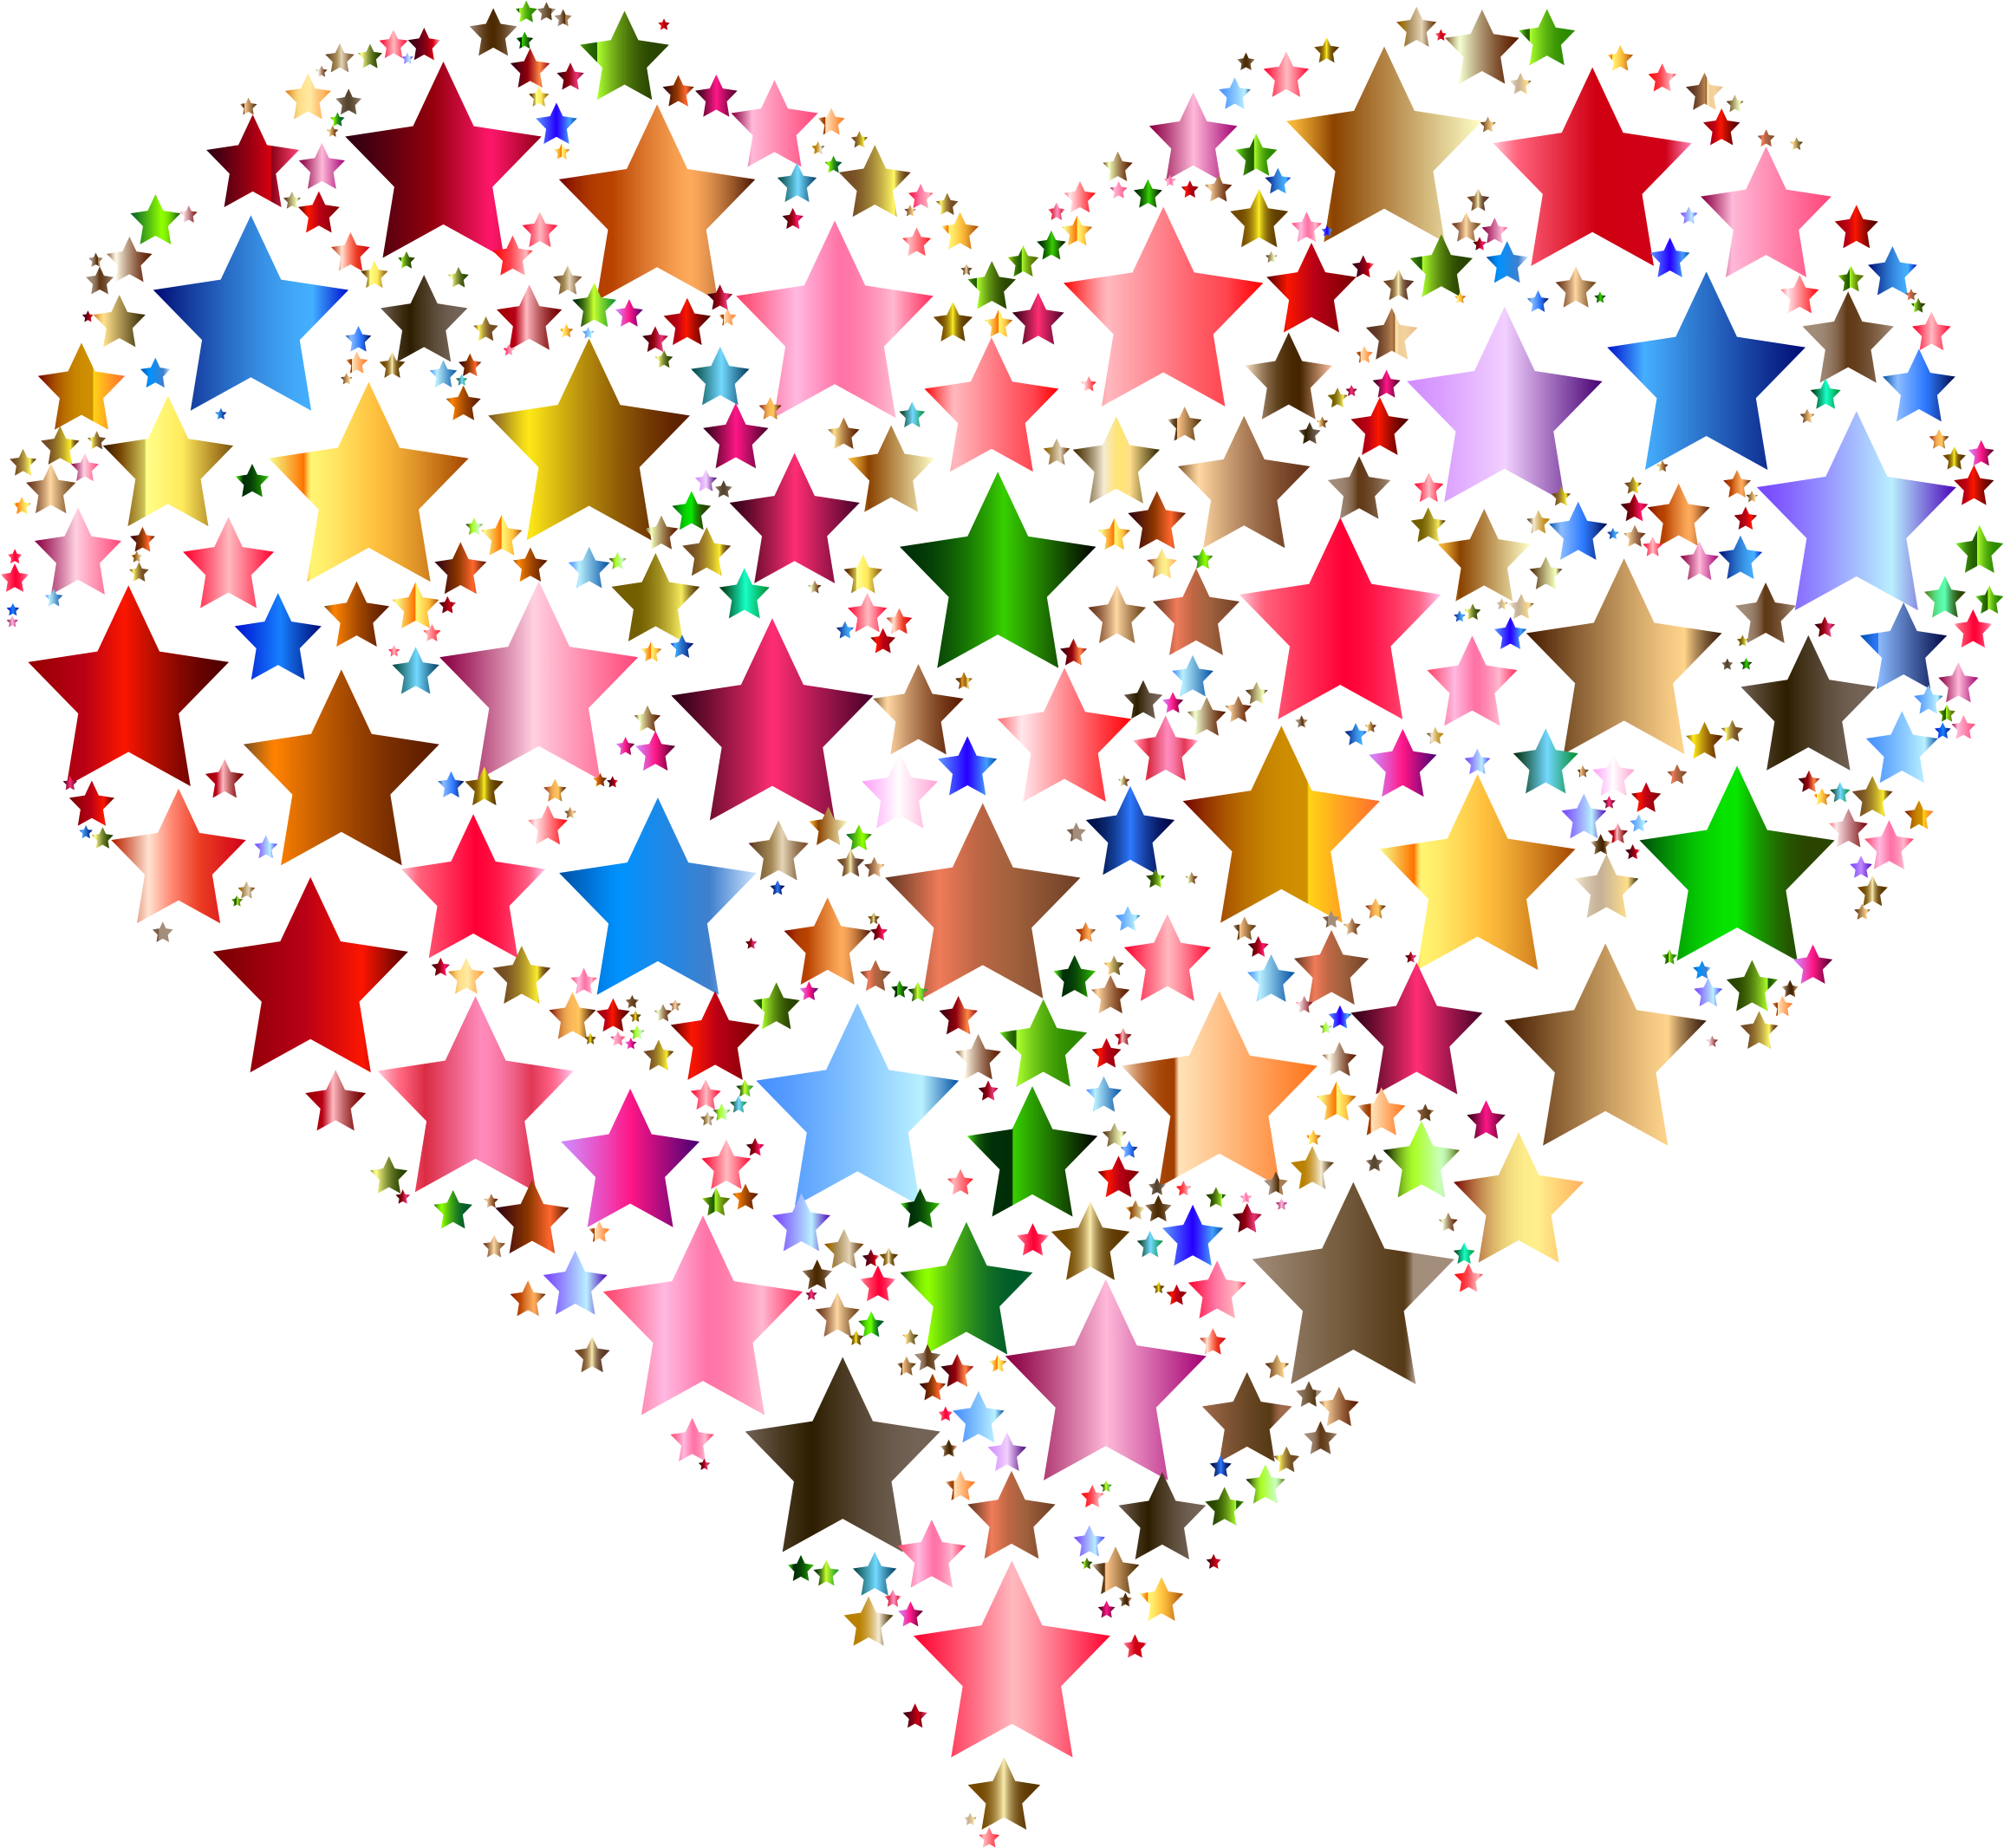 Colorful Heart Stars 7 by GDJ